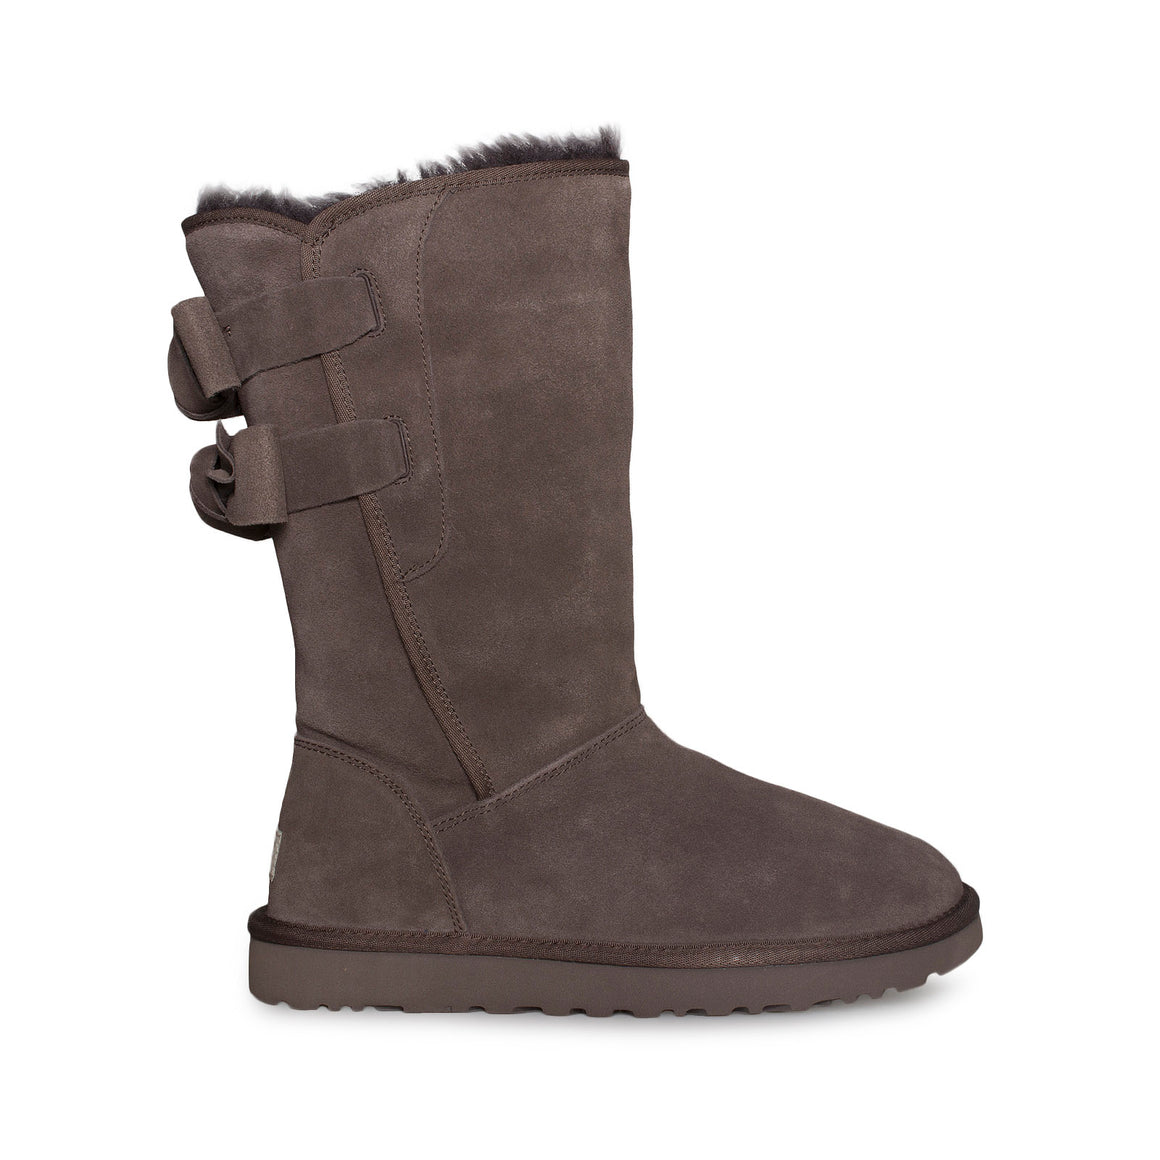 UGG Allegra Bow Chocolate Boots - Women's